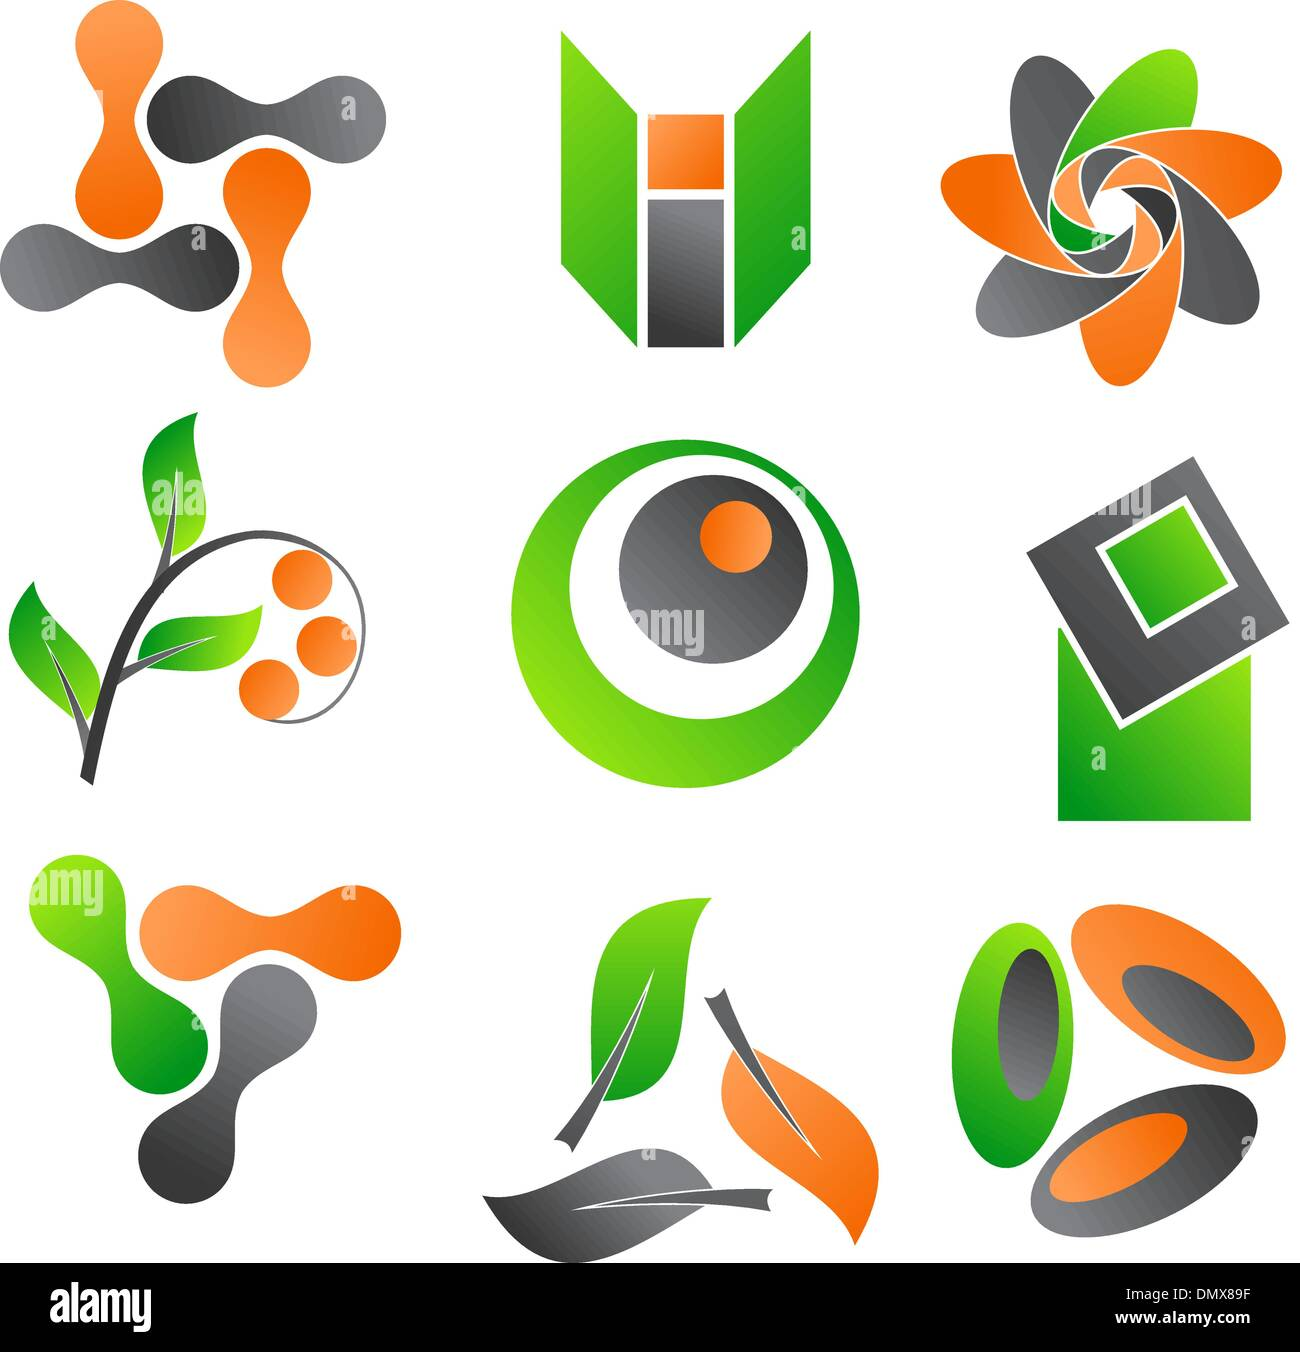 Abstract icons - Stock Image